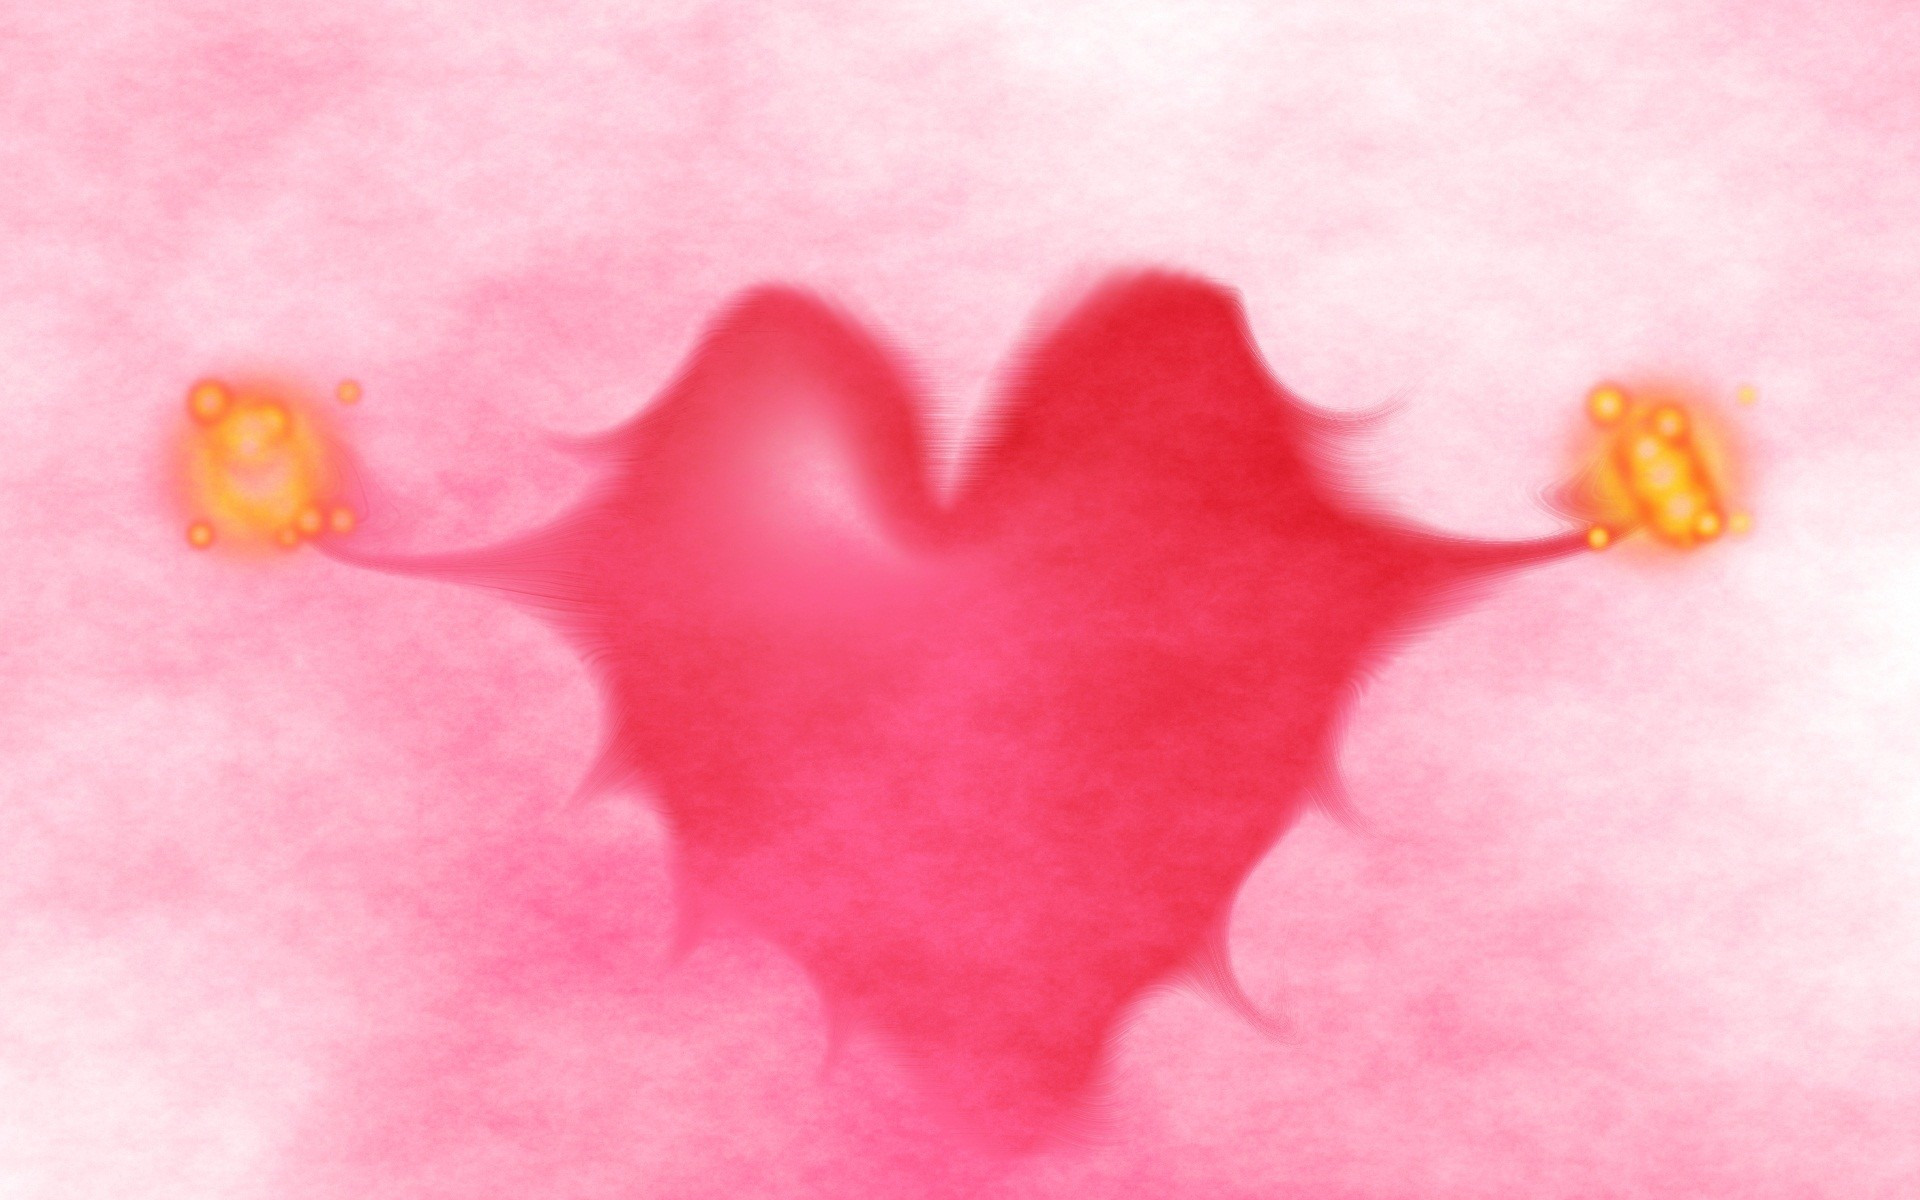 Pink Heart Wallpaper with Wings.  Free_Wallpaper__A_Pink_Heart_with_Wings_Free_to_Go_Anywhere.jpg